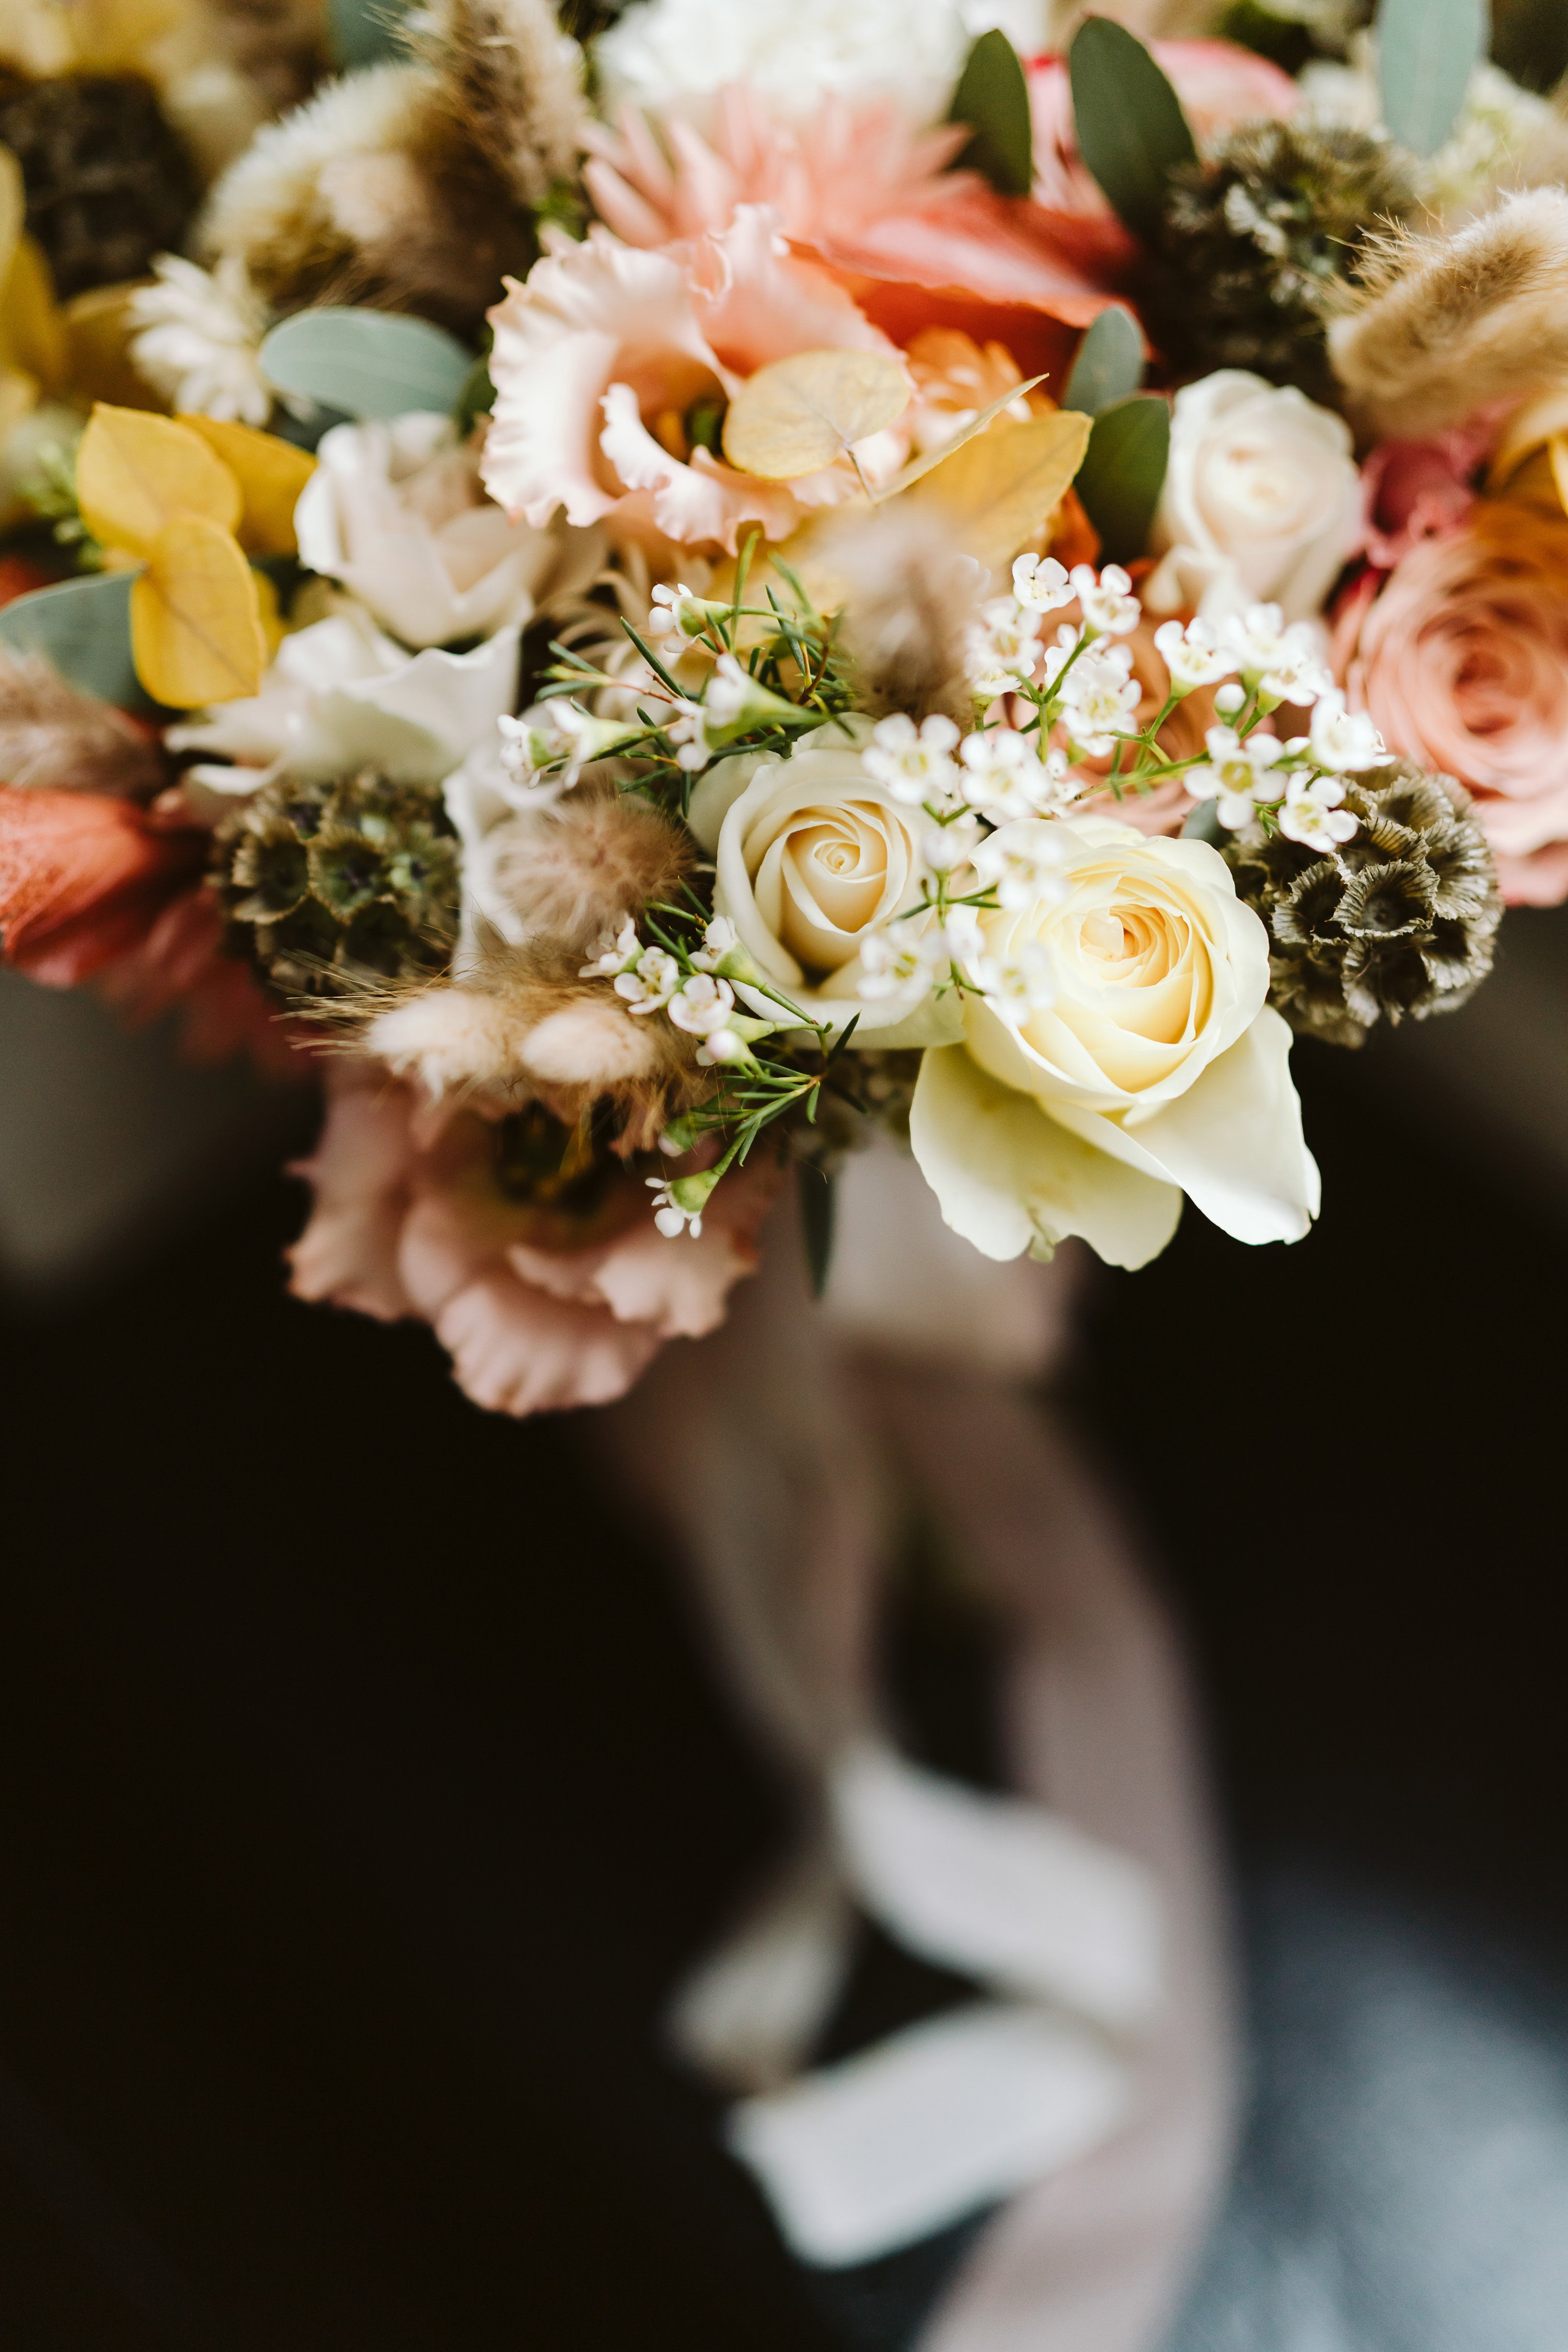 Autumn wedding bouquet which has a summer feeling. Pink and white roses and a pretty ribbon